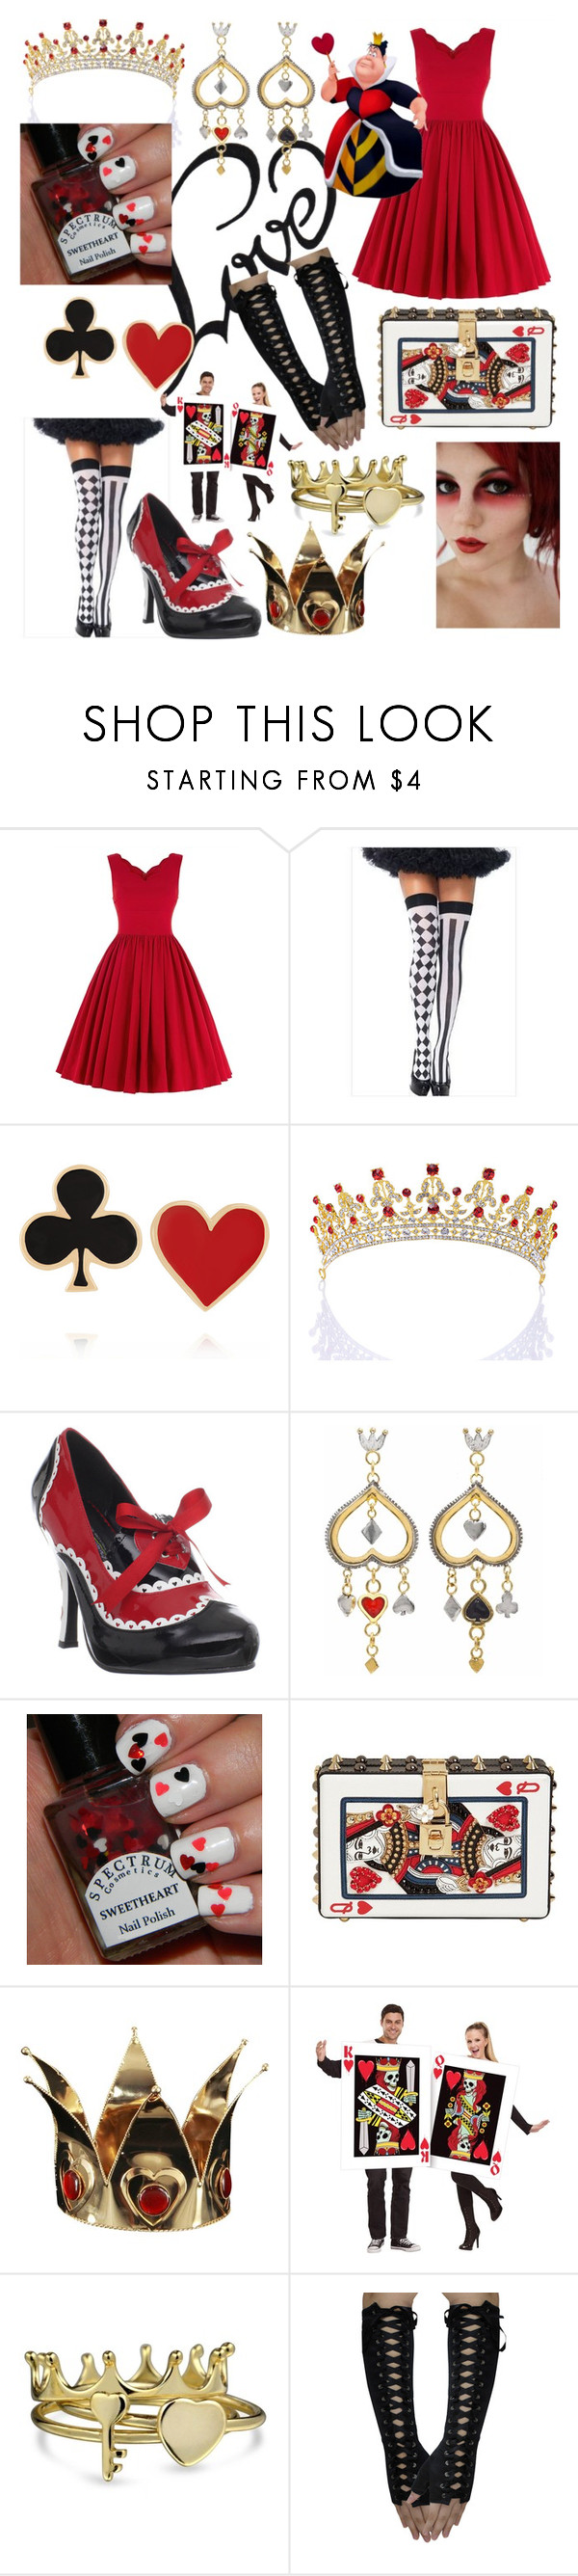 """Queen of Hearts❤👑"" by peridot11871 ❤ liked on Polyvore featuring Sexy Romantie, Alison Lou, Funtasma, Sophie Harley London, Dolce&Gabbana and Bling Jewelry"